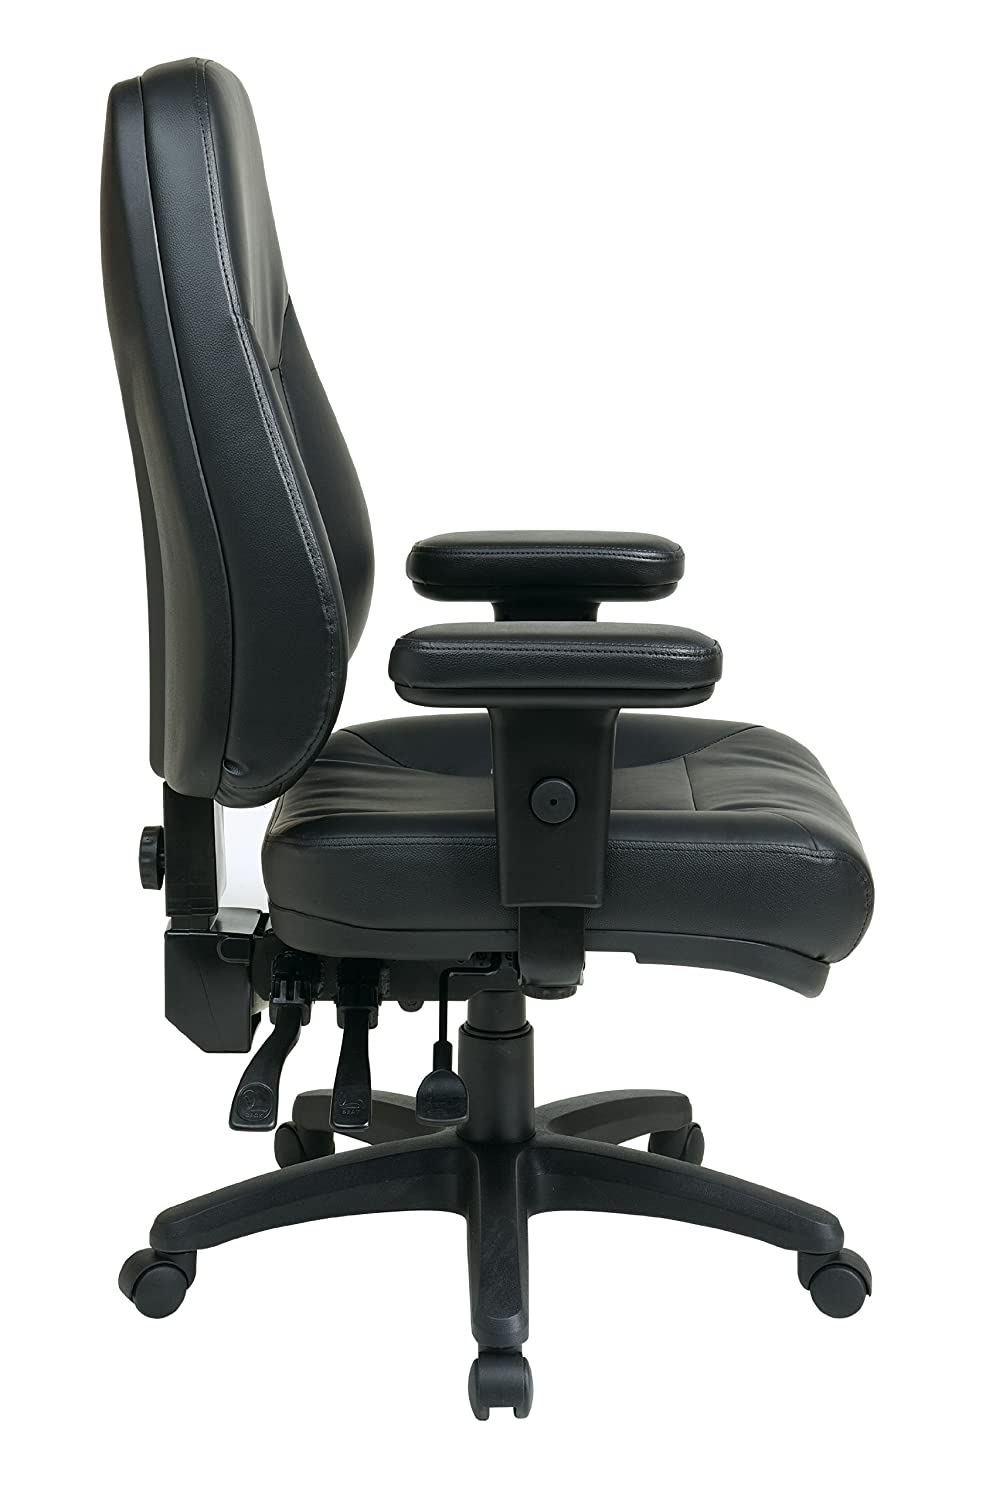 amazoncom office star dual function ergonomic high back eco leather office chair black kitchen u0026 dining